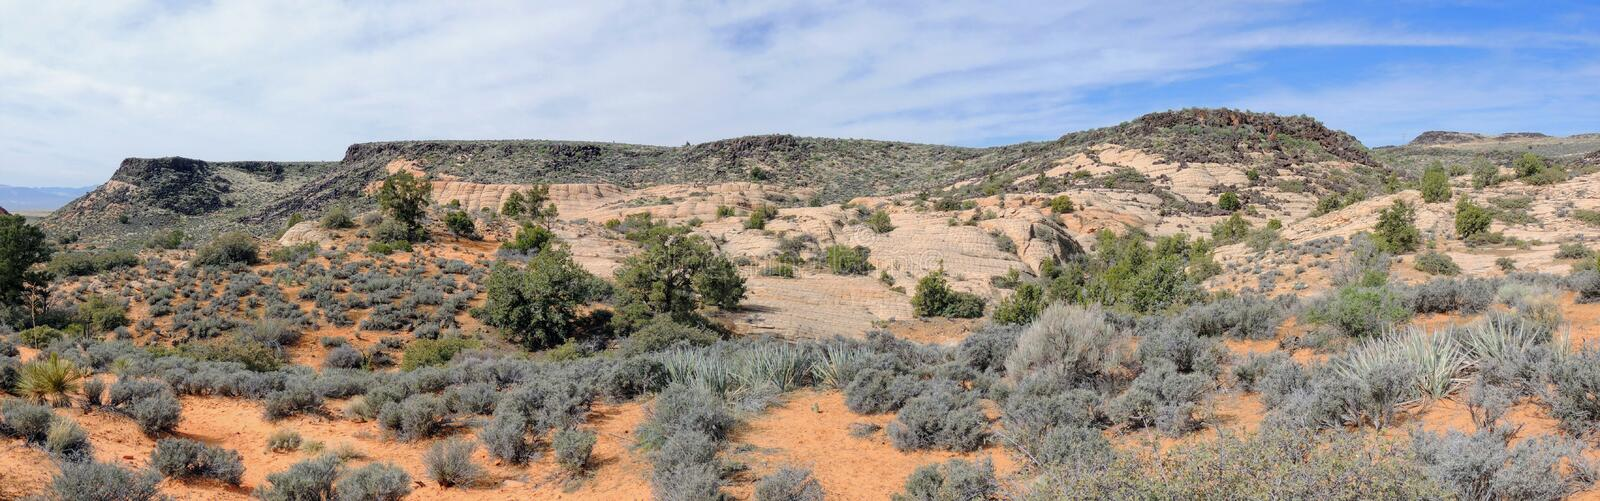 Views of sandstone and lava rock mountains and desert plants around the Red Cliffs National Conservation Area on the Yellow Knolls. Sweeping Views of sandstone royalty free stock images